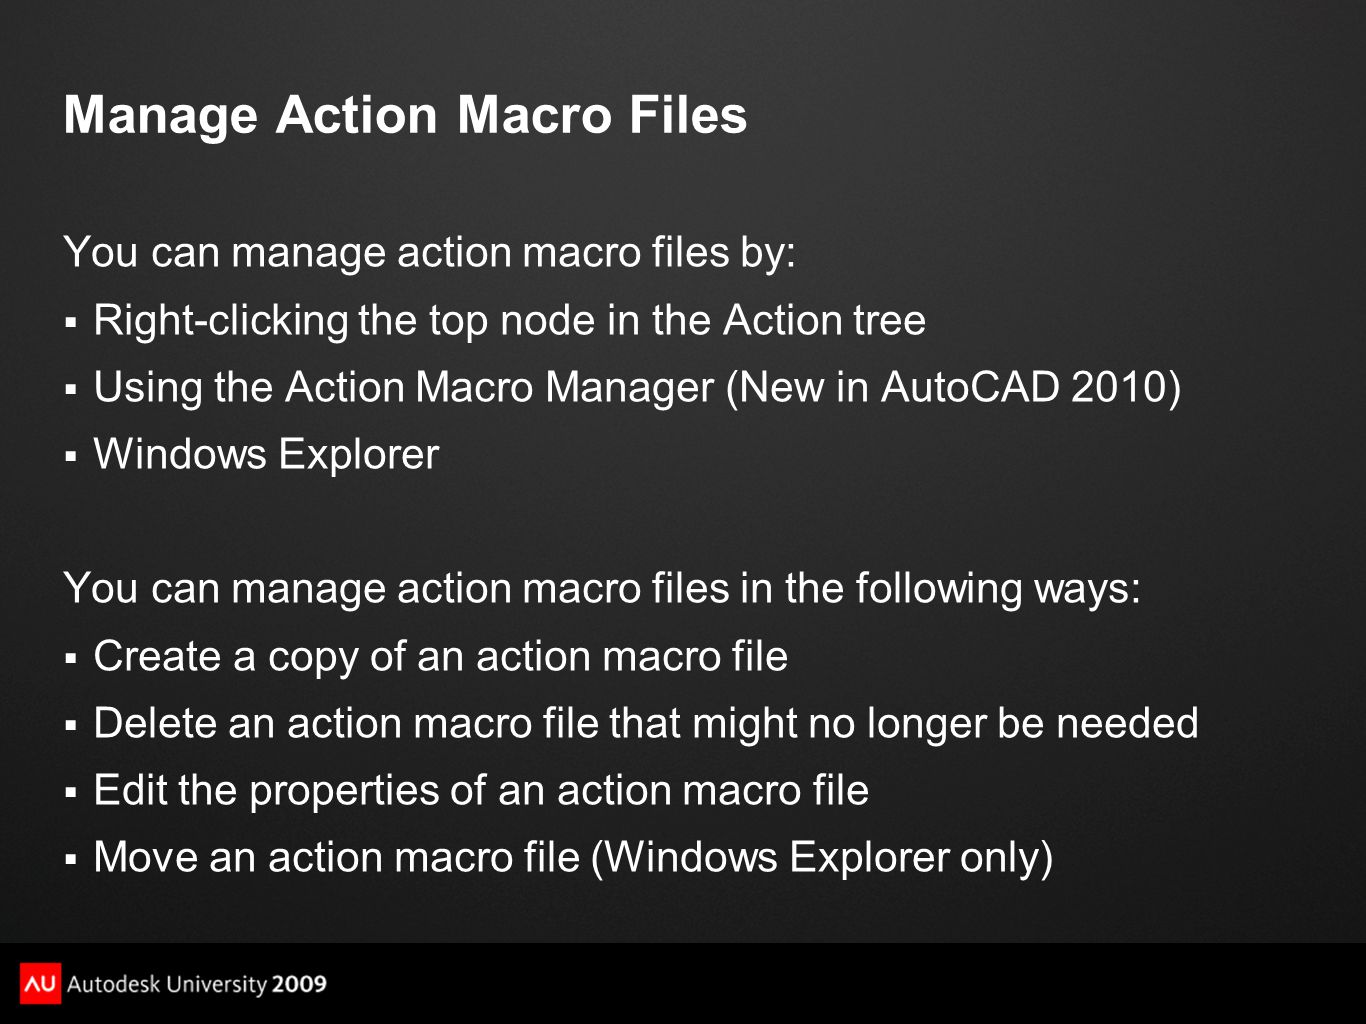 Manage Action Macro Files You can manage action macro files by:  Right-clicking the top node in the Action tree  Using the Action Macro Manager (New in AutoCAD 2010)  Windows Explorer You can manage action macro files in the following ways:  Create a copy of an action macro file  Delete an action macro file that might no longer be needed  Edit the properties of an action macro file  Move an action macro file (Windows Explorer only)